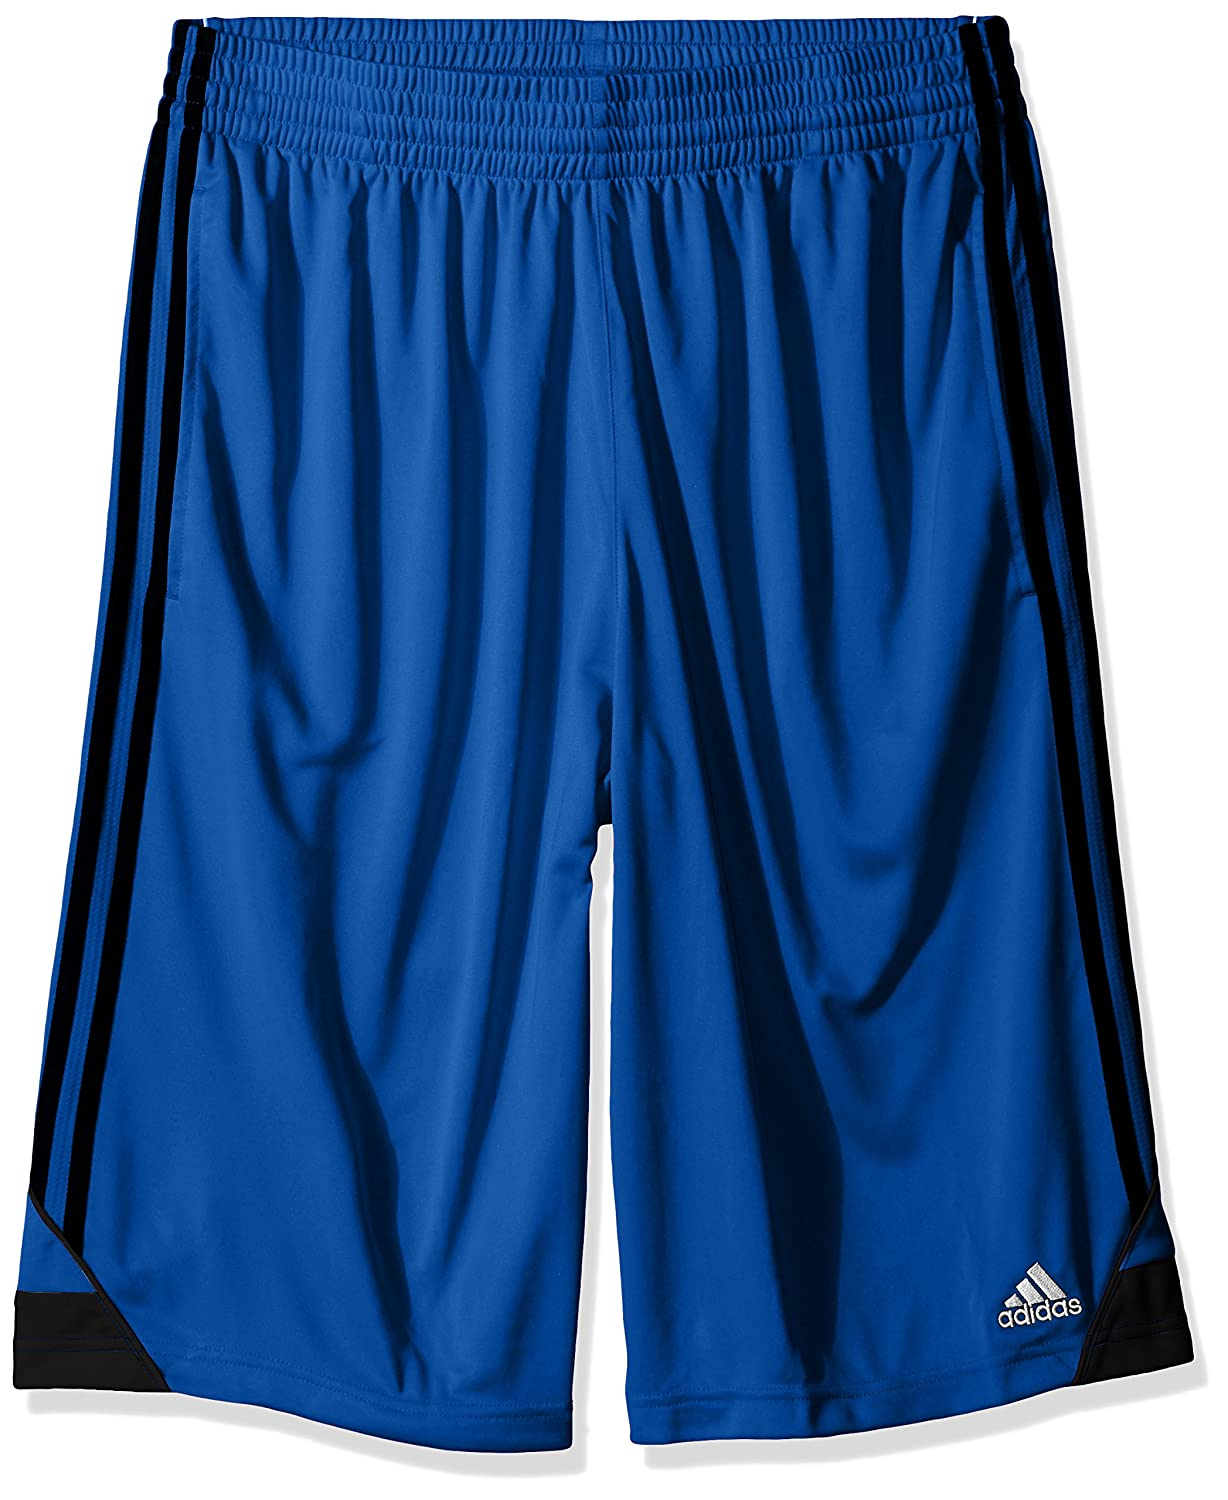 Adidasメンズ3Gスピード ビッグ&トール ショートパンツ B01DP50T7K X-Large/Tall|Collegiate Royal/Black Collegiate Royal/Black X-Large/Tall